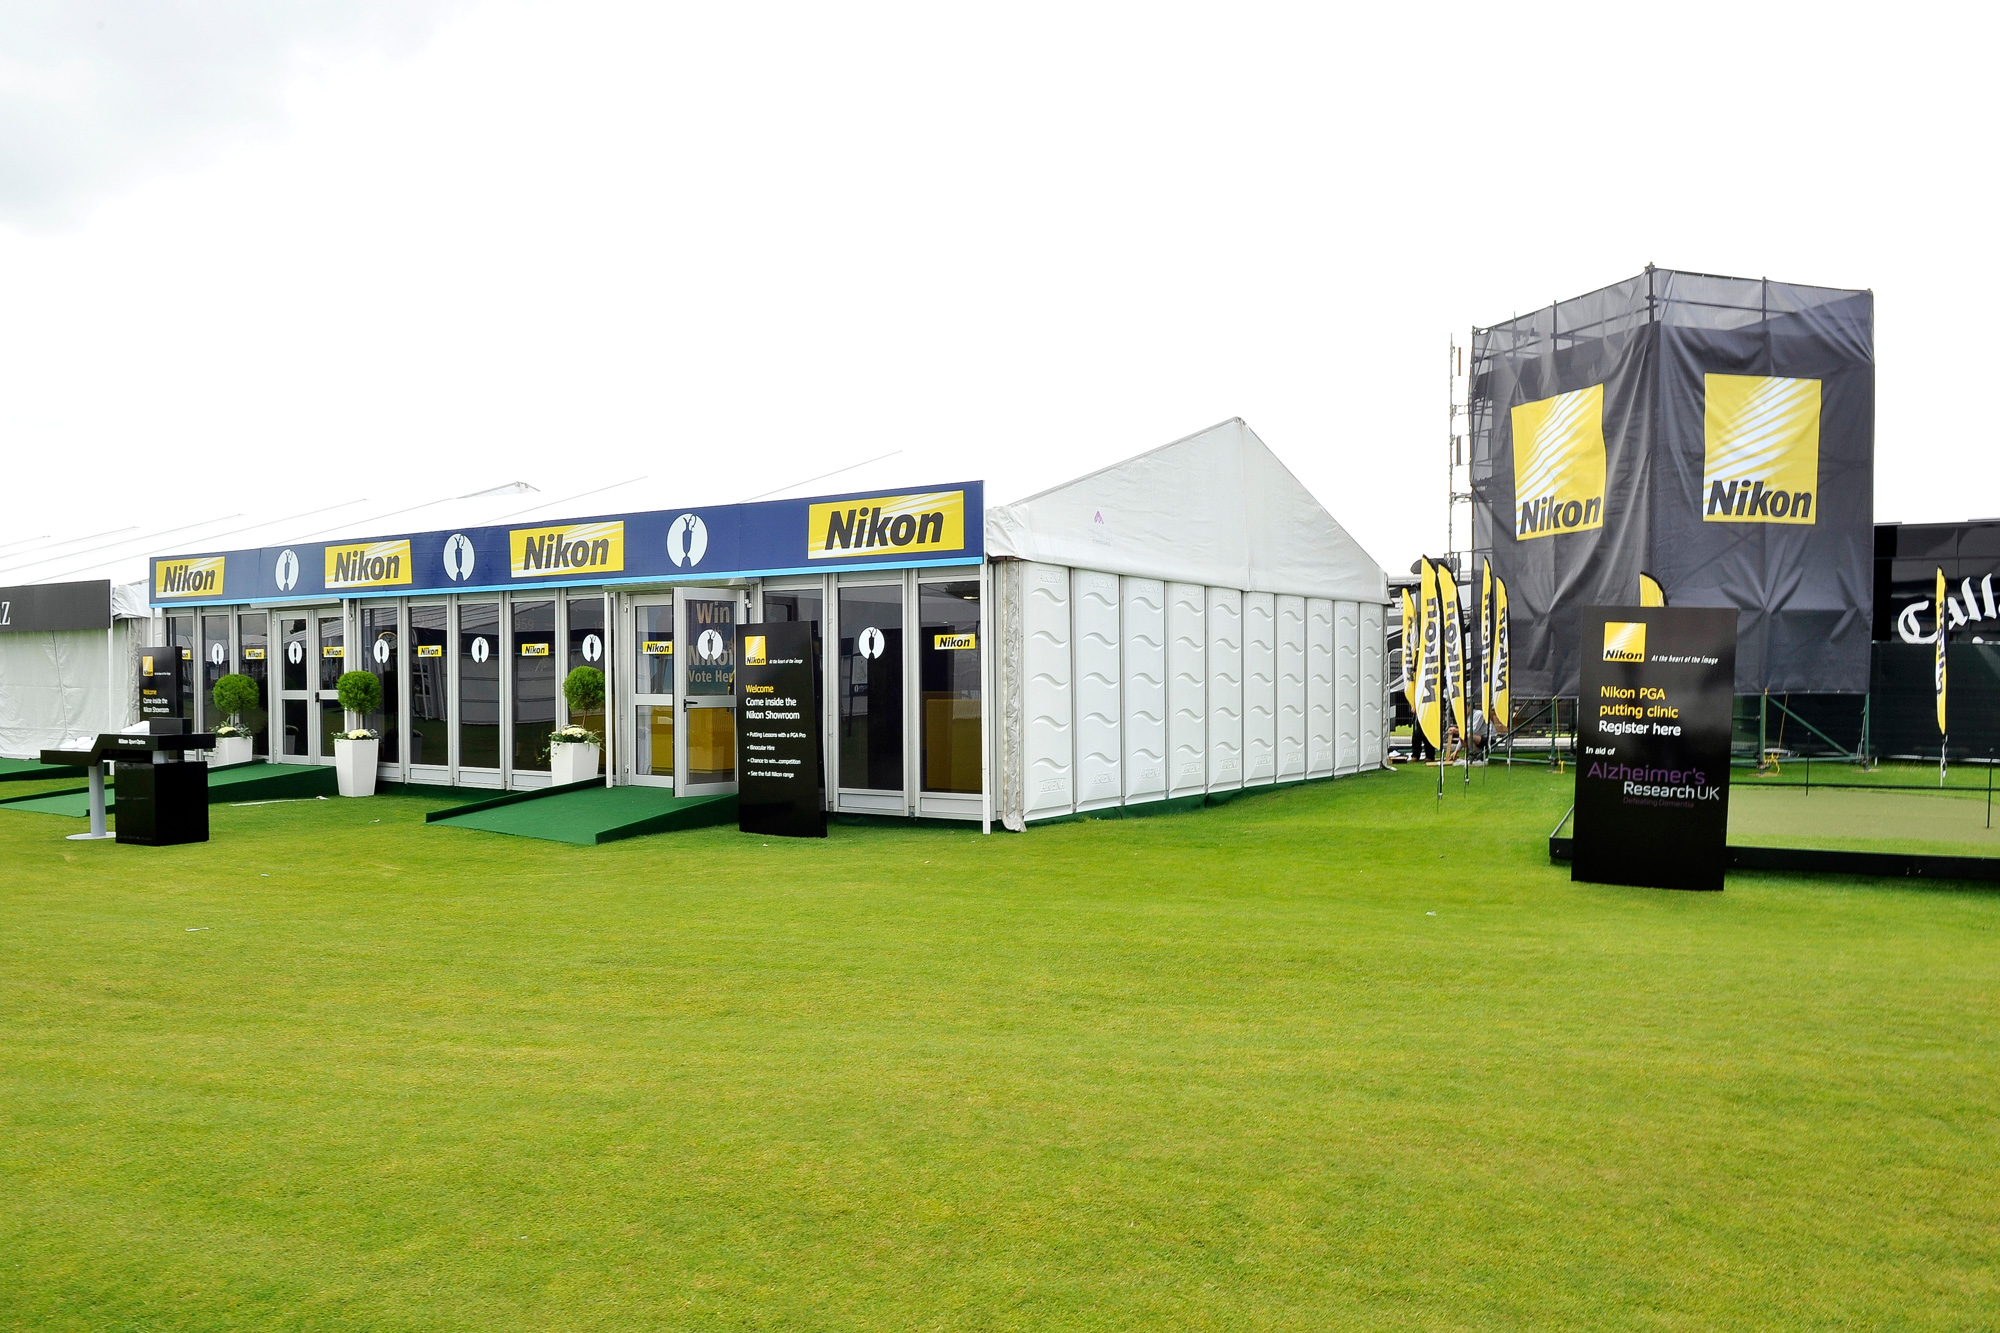 Event design for Nikon at The Open Golf Championships